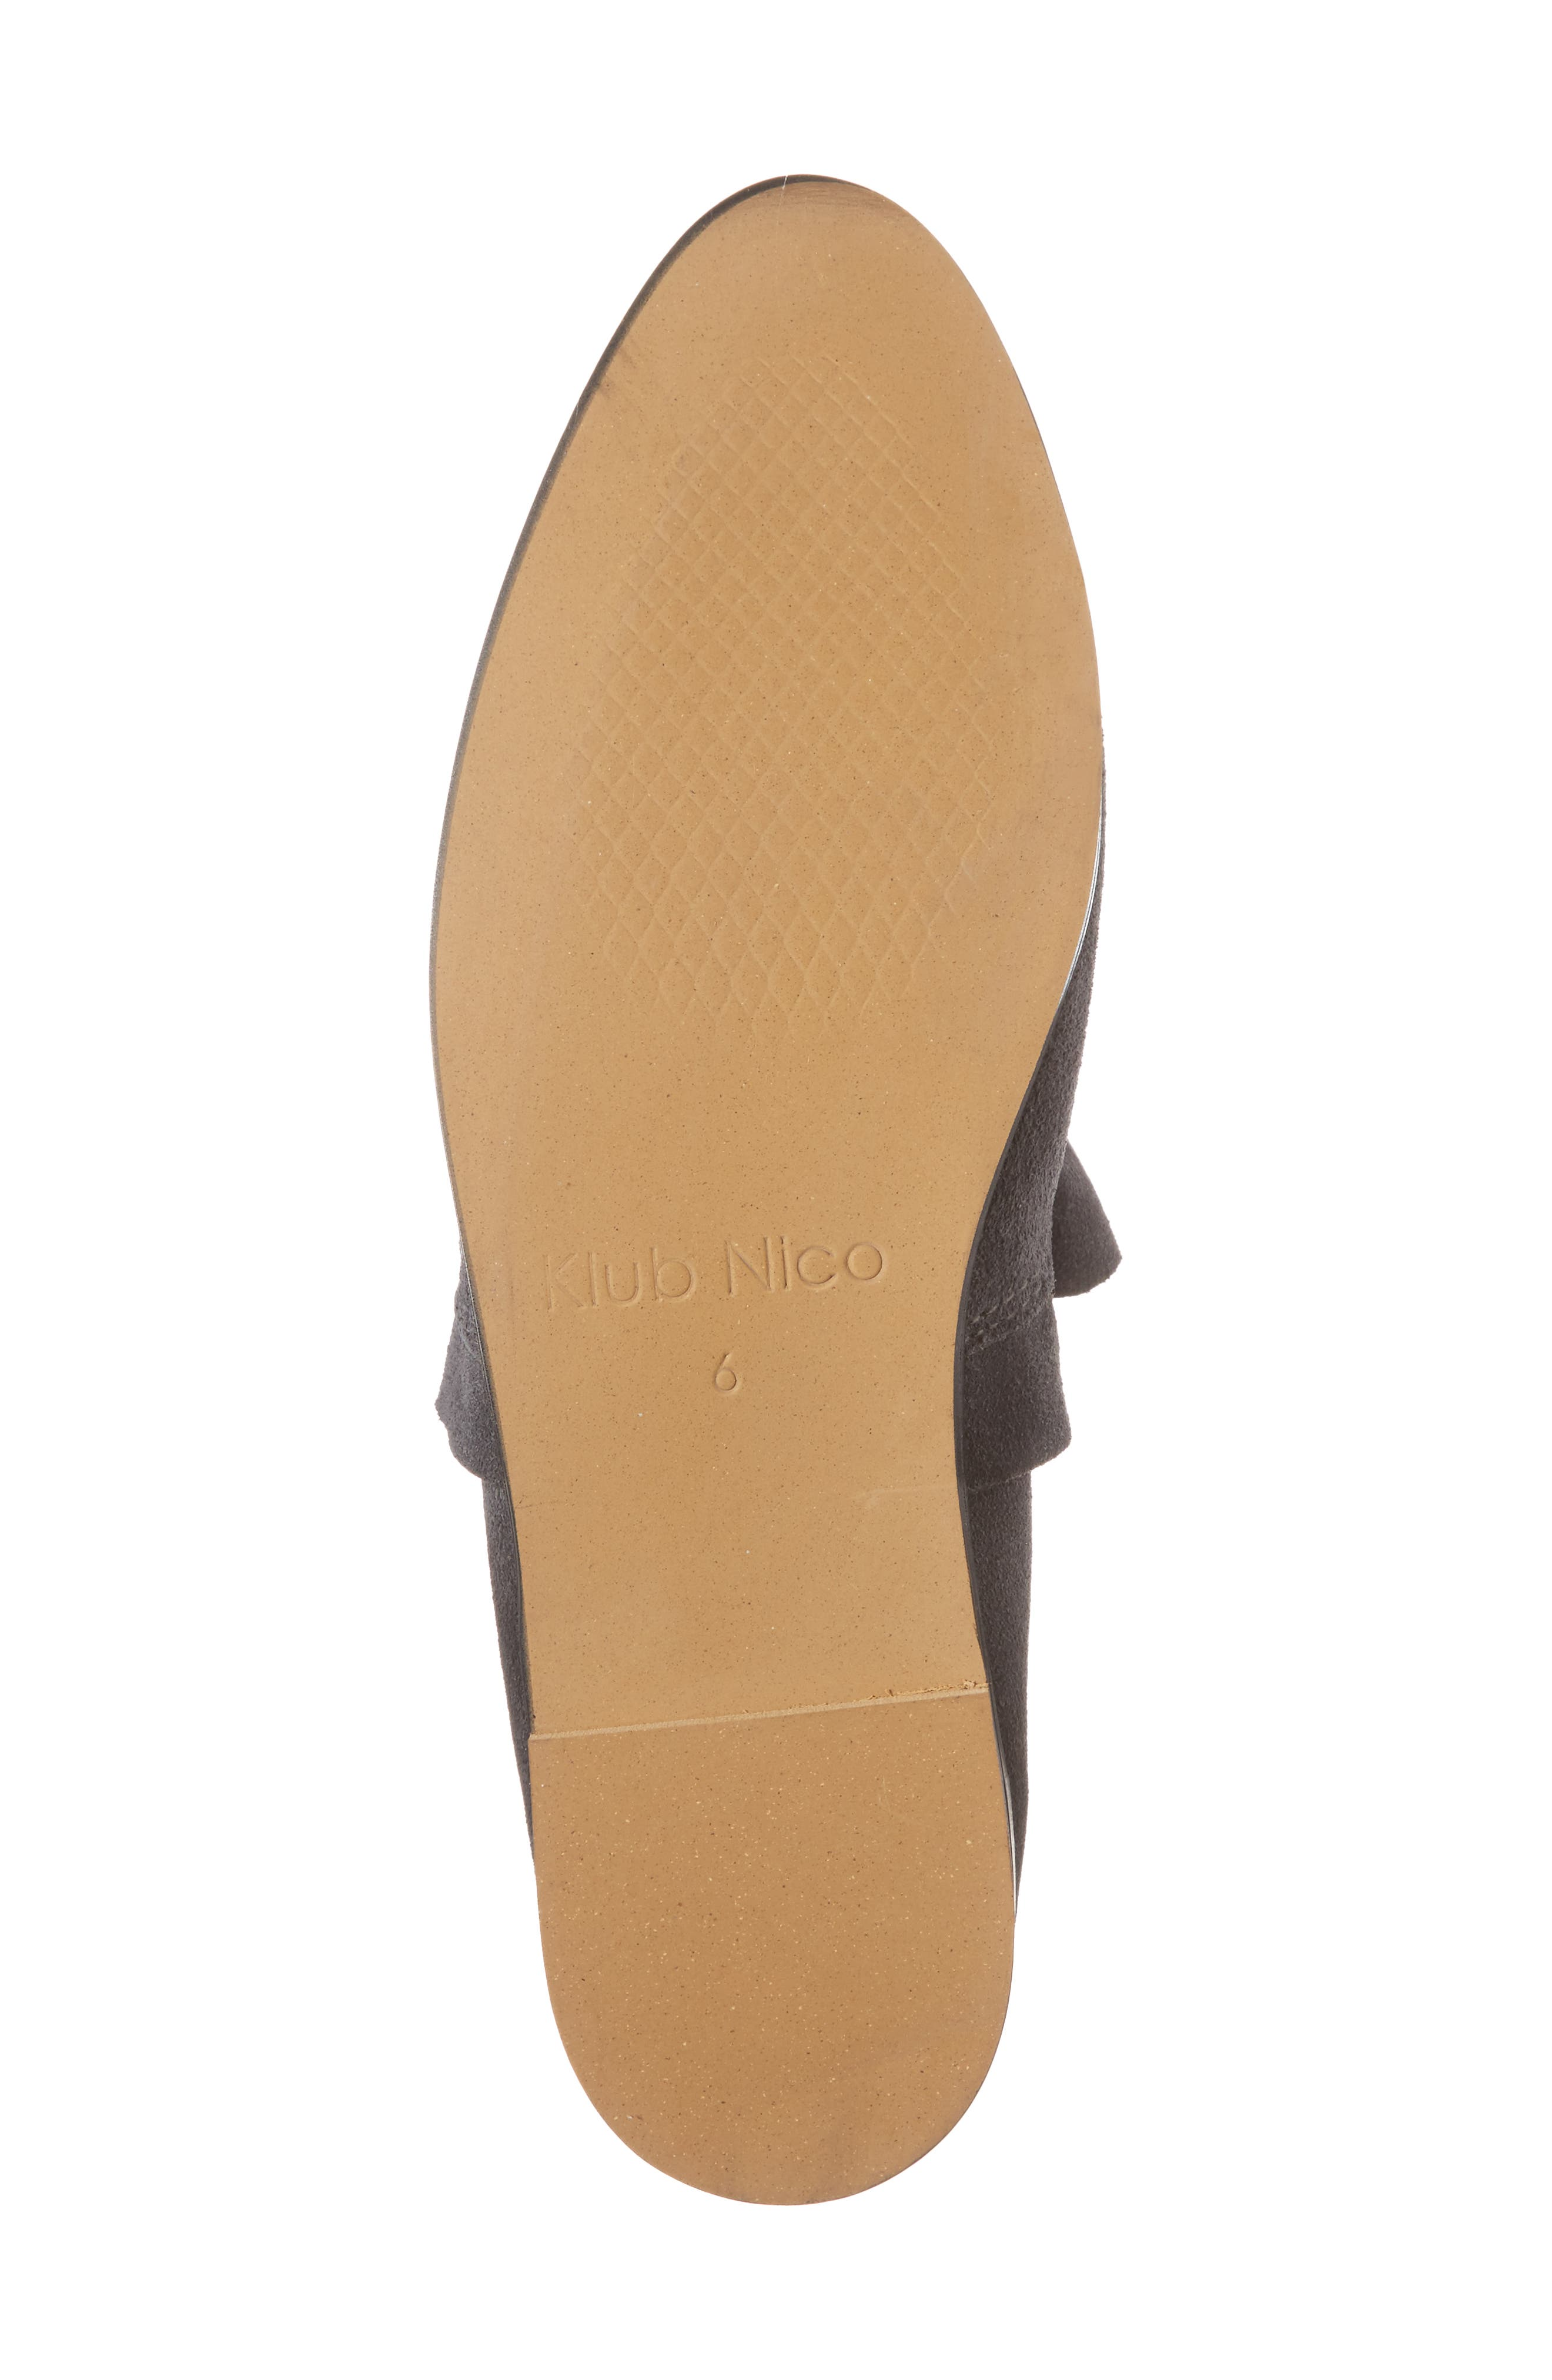 Gabbie Ruffle d'Orsay Flat,                             Alternate thumbnail 6, color,                             Ink Suede